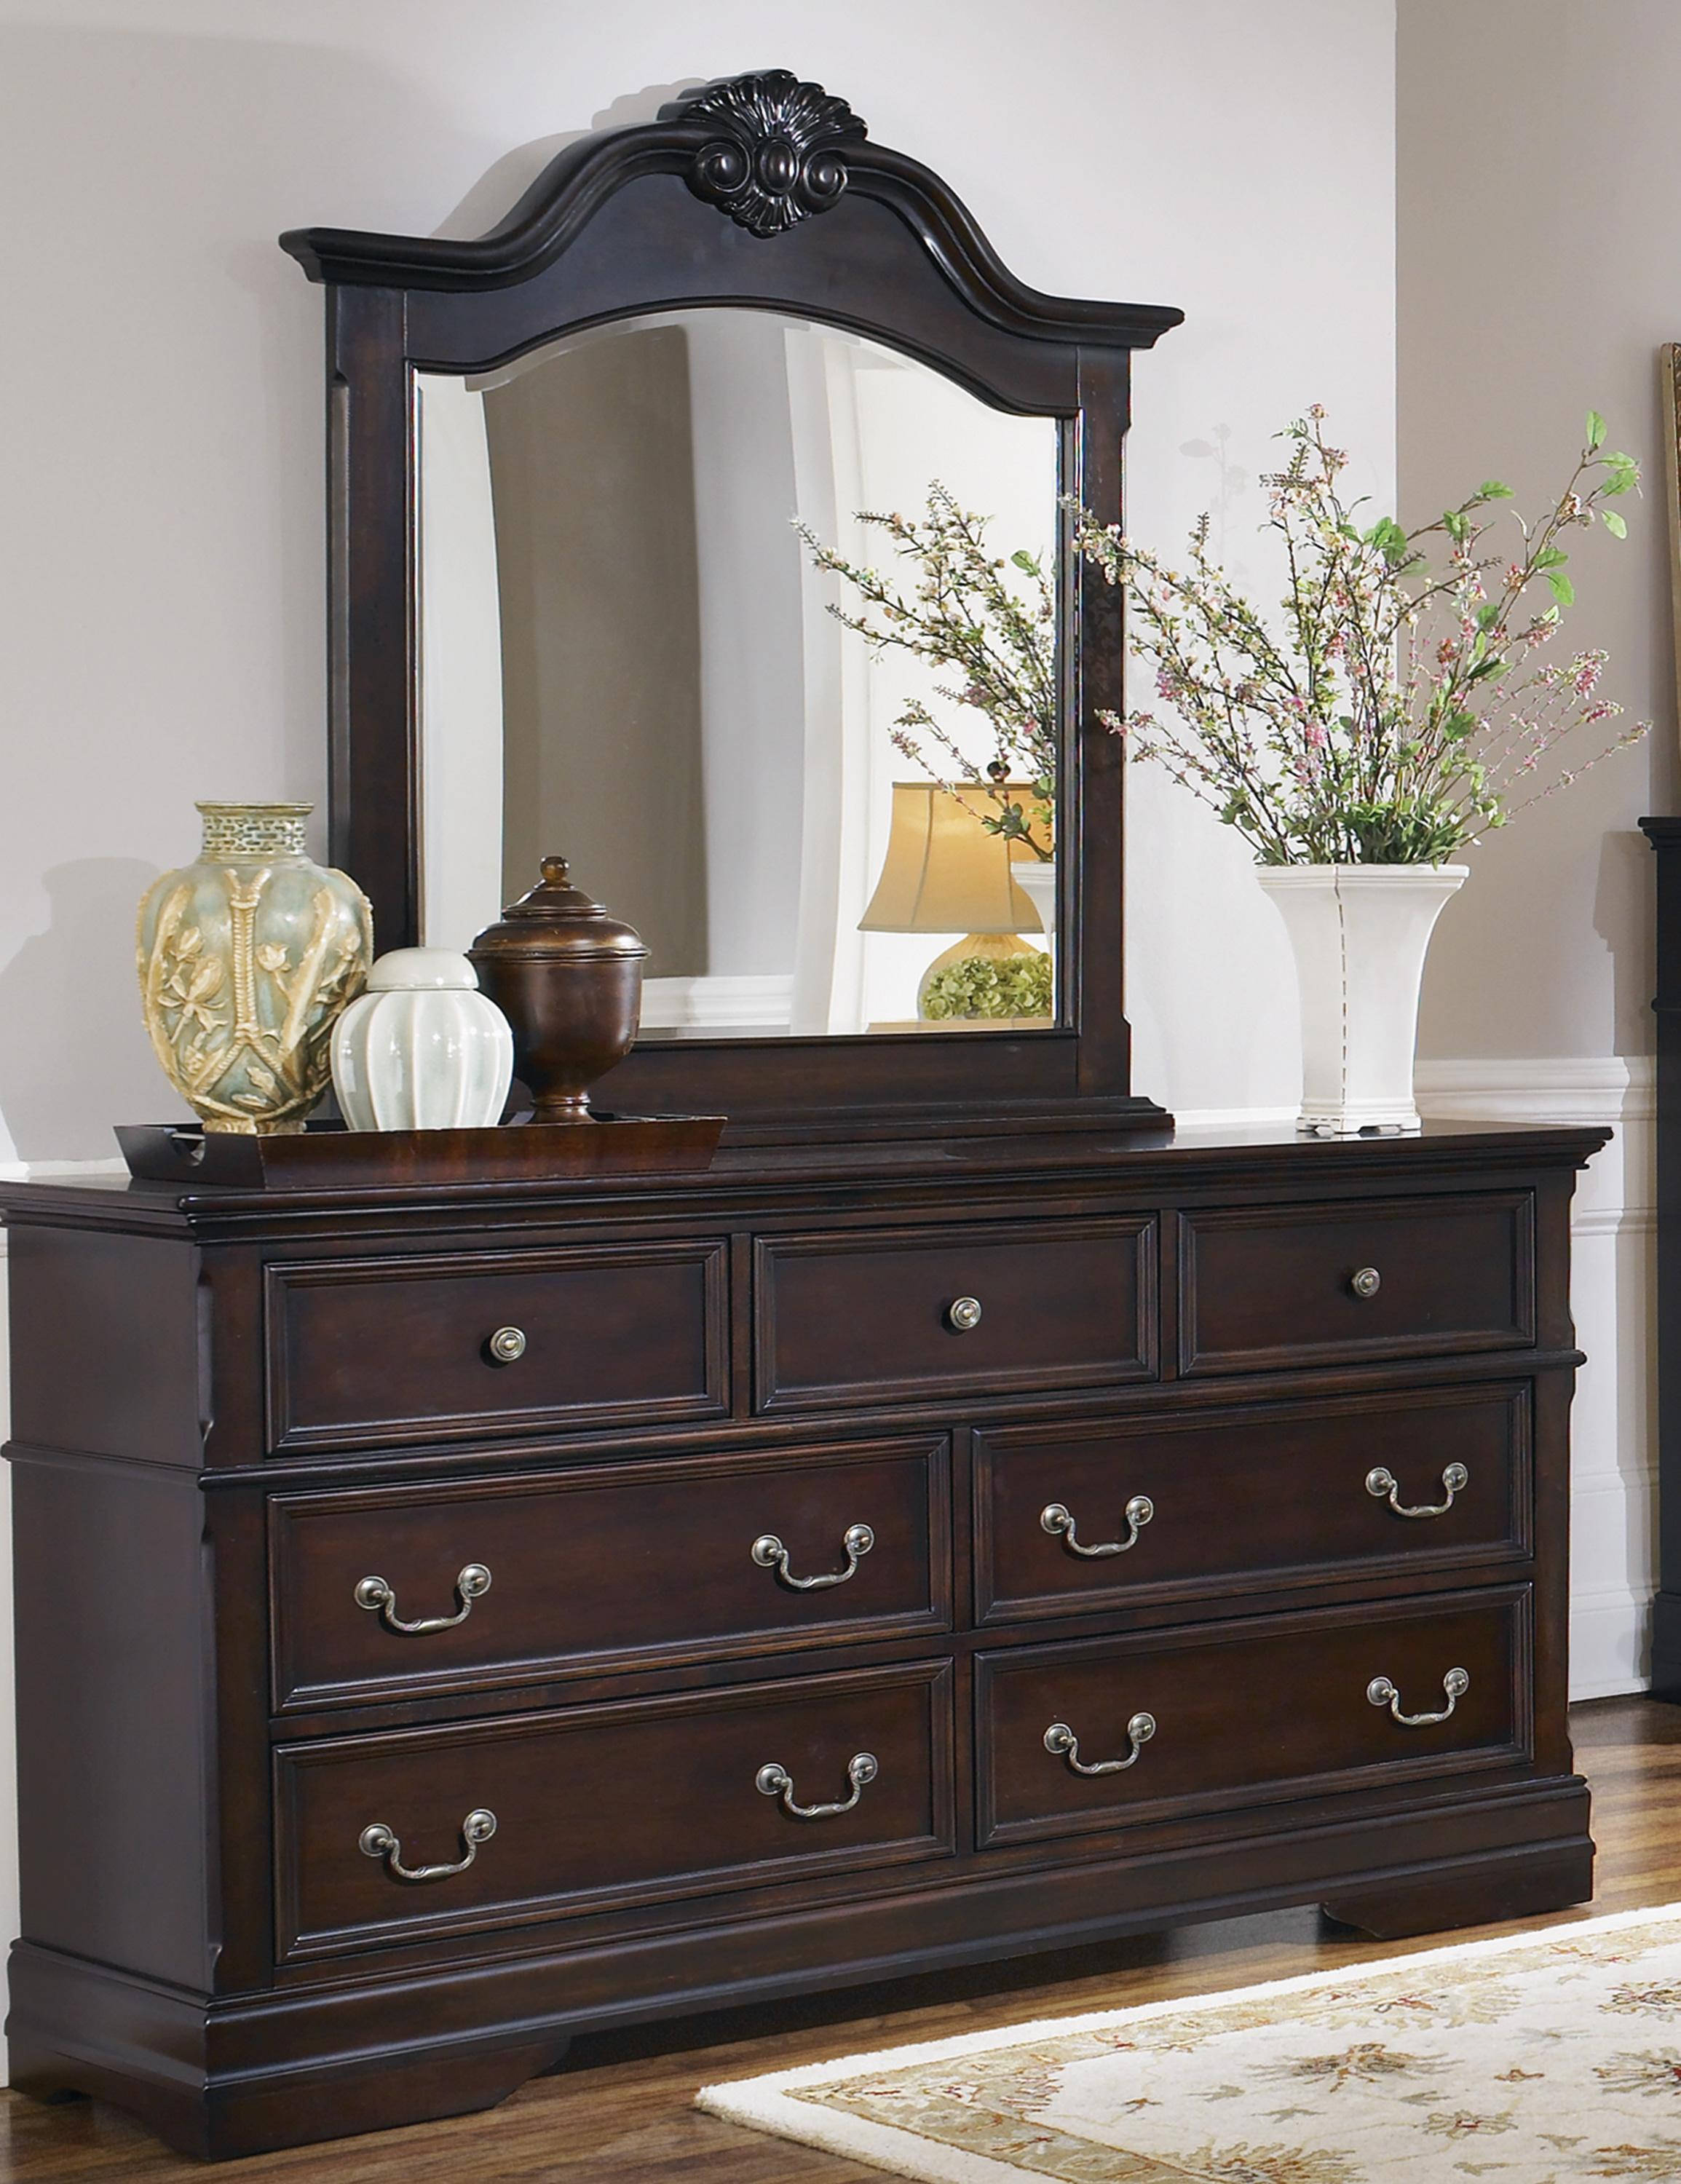 Coaster furniture cambridge dresser and mirror the for Affordable furniture cambridge